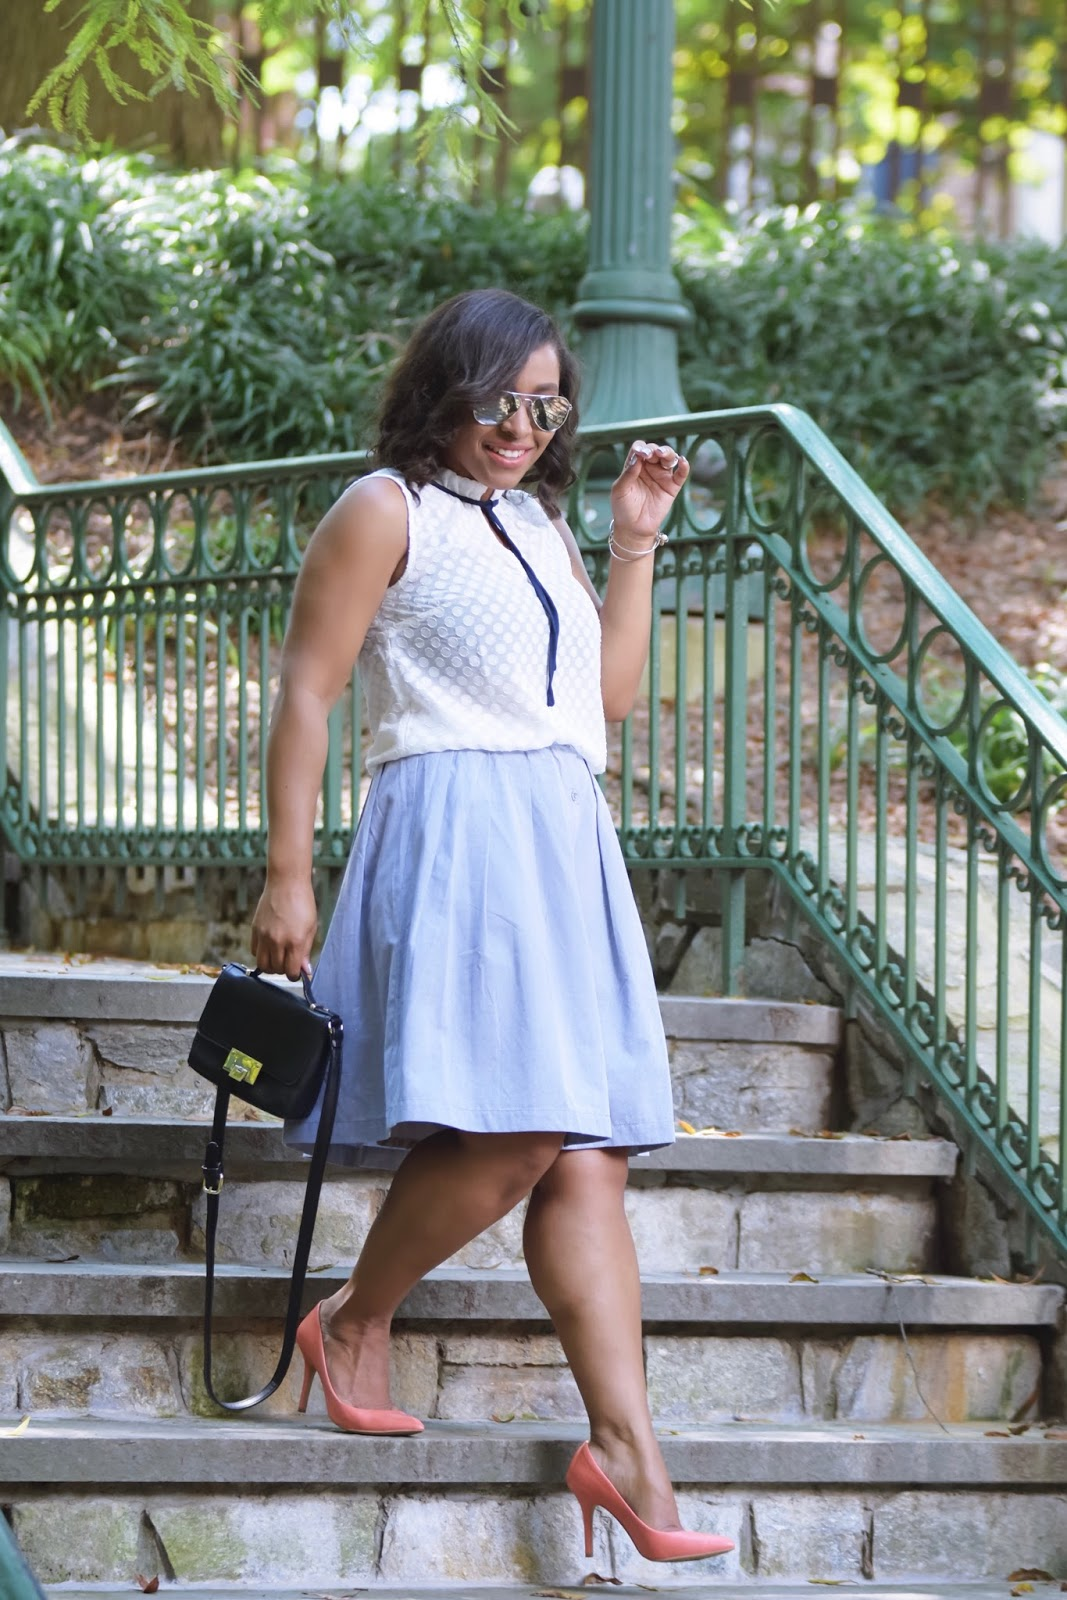 Modcloth, Modclothsquad, prefall, full skirt, midi skirt, armandhugon, dominican bloggers, dc bloggers, streetstyle, fall outfit ideas, necktie blouse